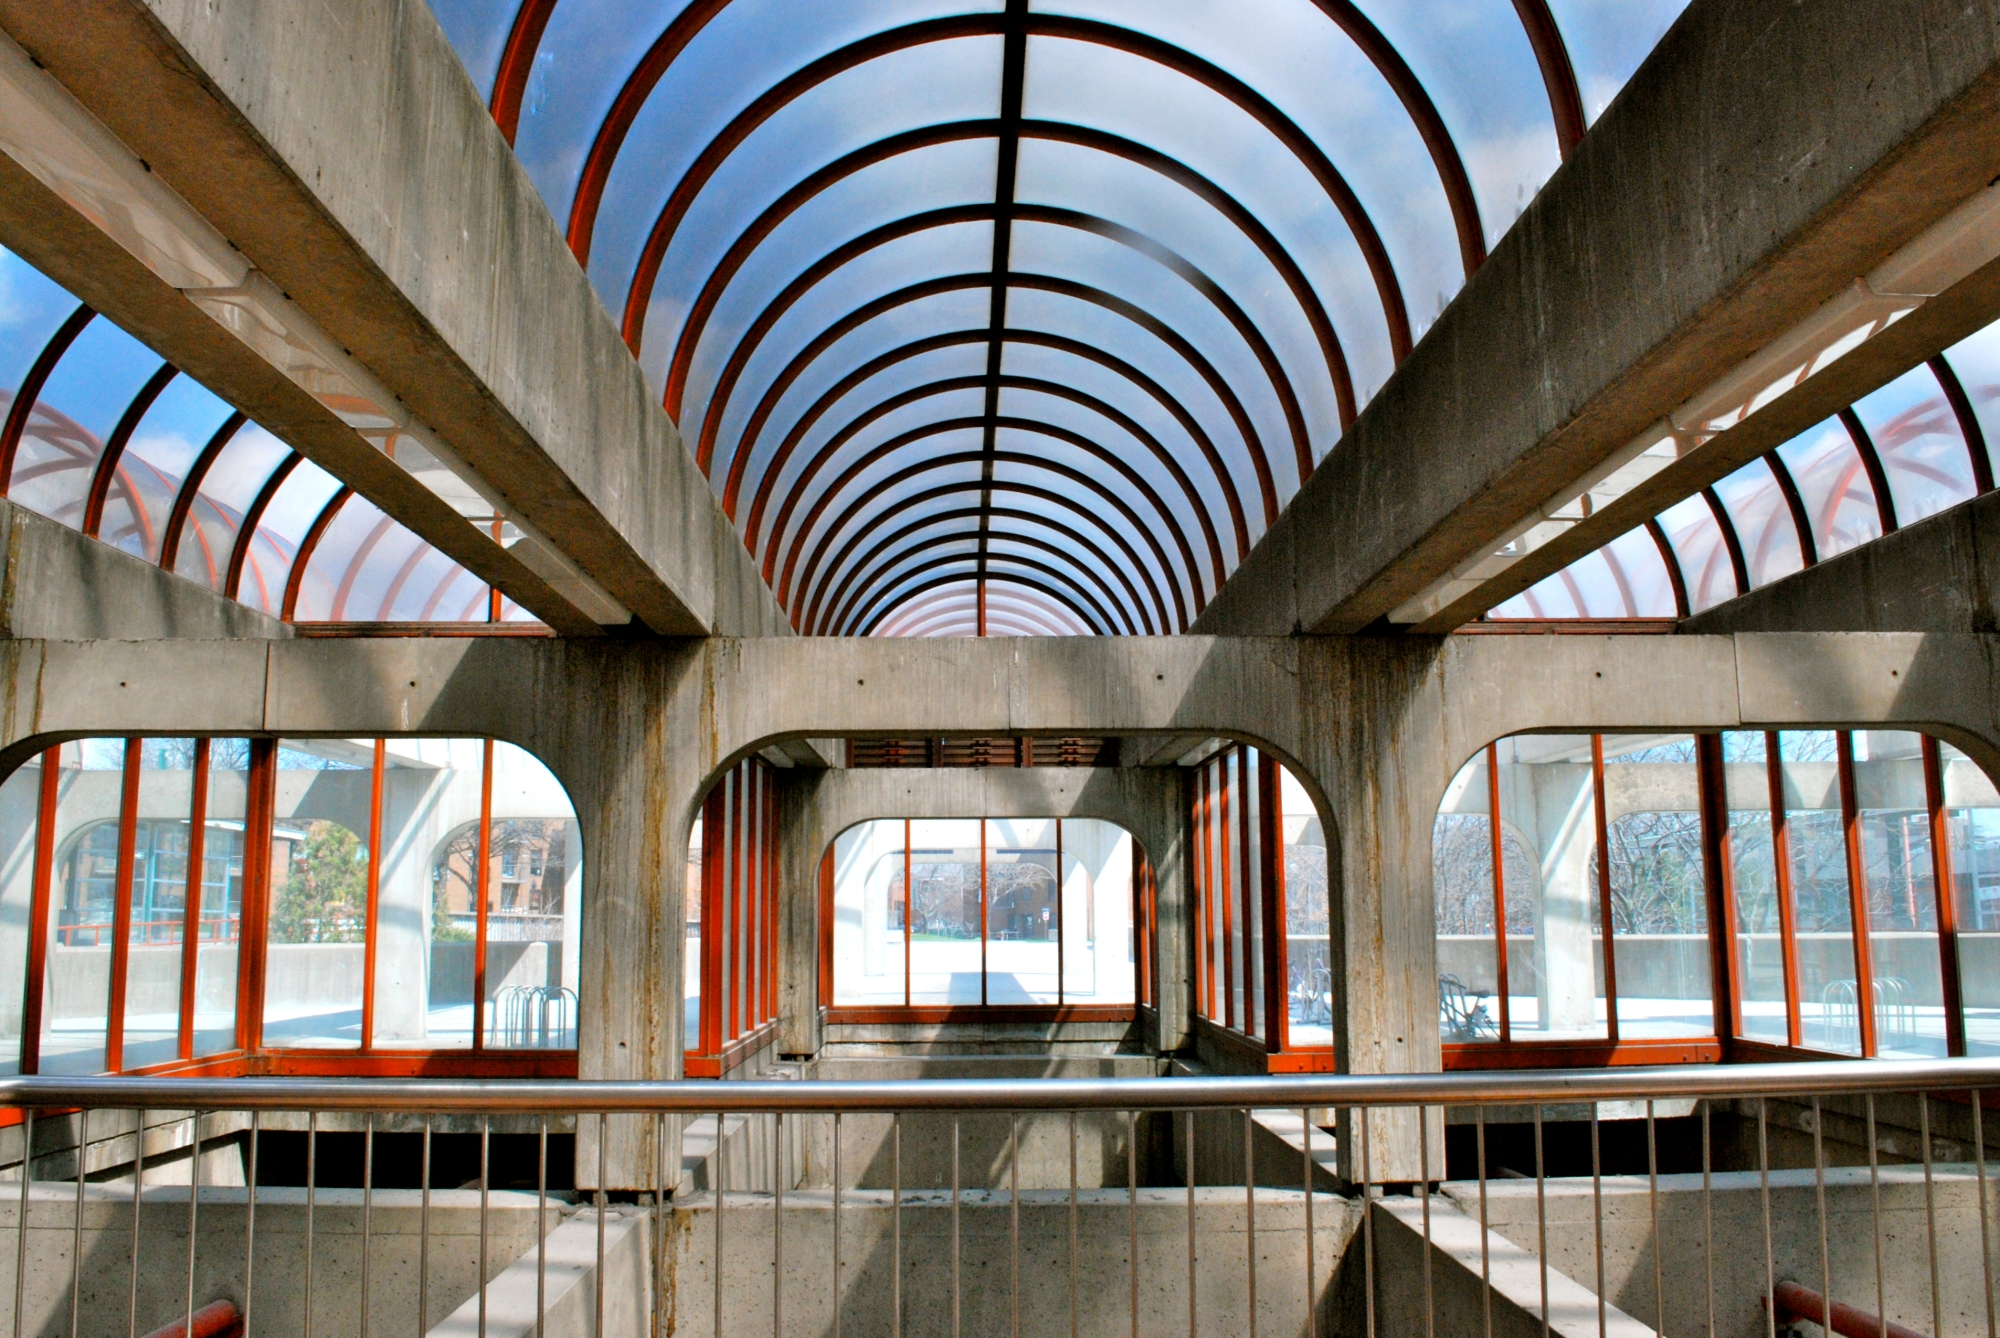 Concrete and glass architecture of Angrignon metro